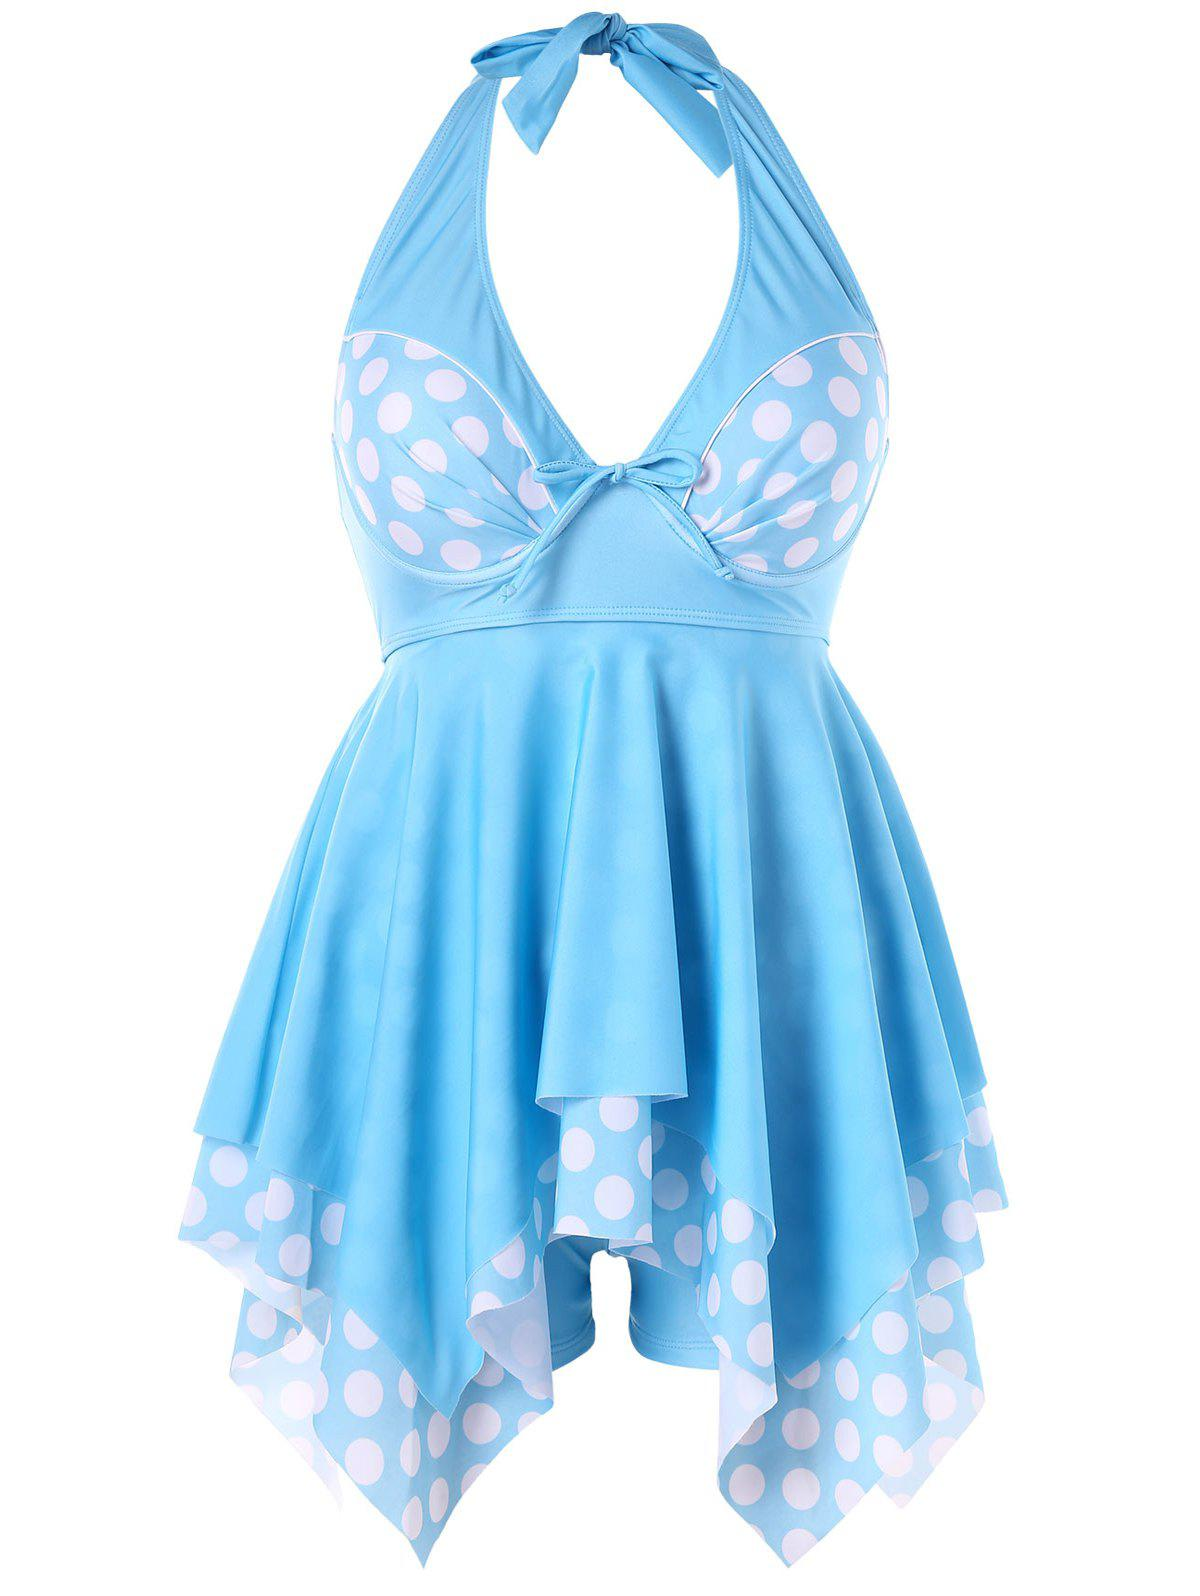 Halter Neckline Plus Size Polka Dot Tankini - LIGHT BLUE 3XL